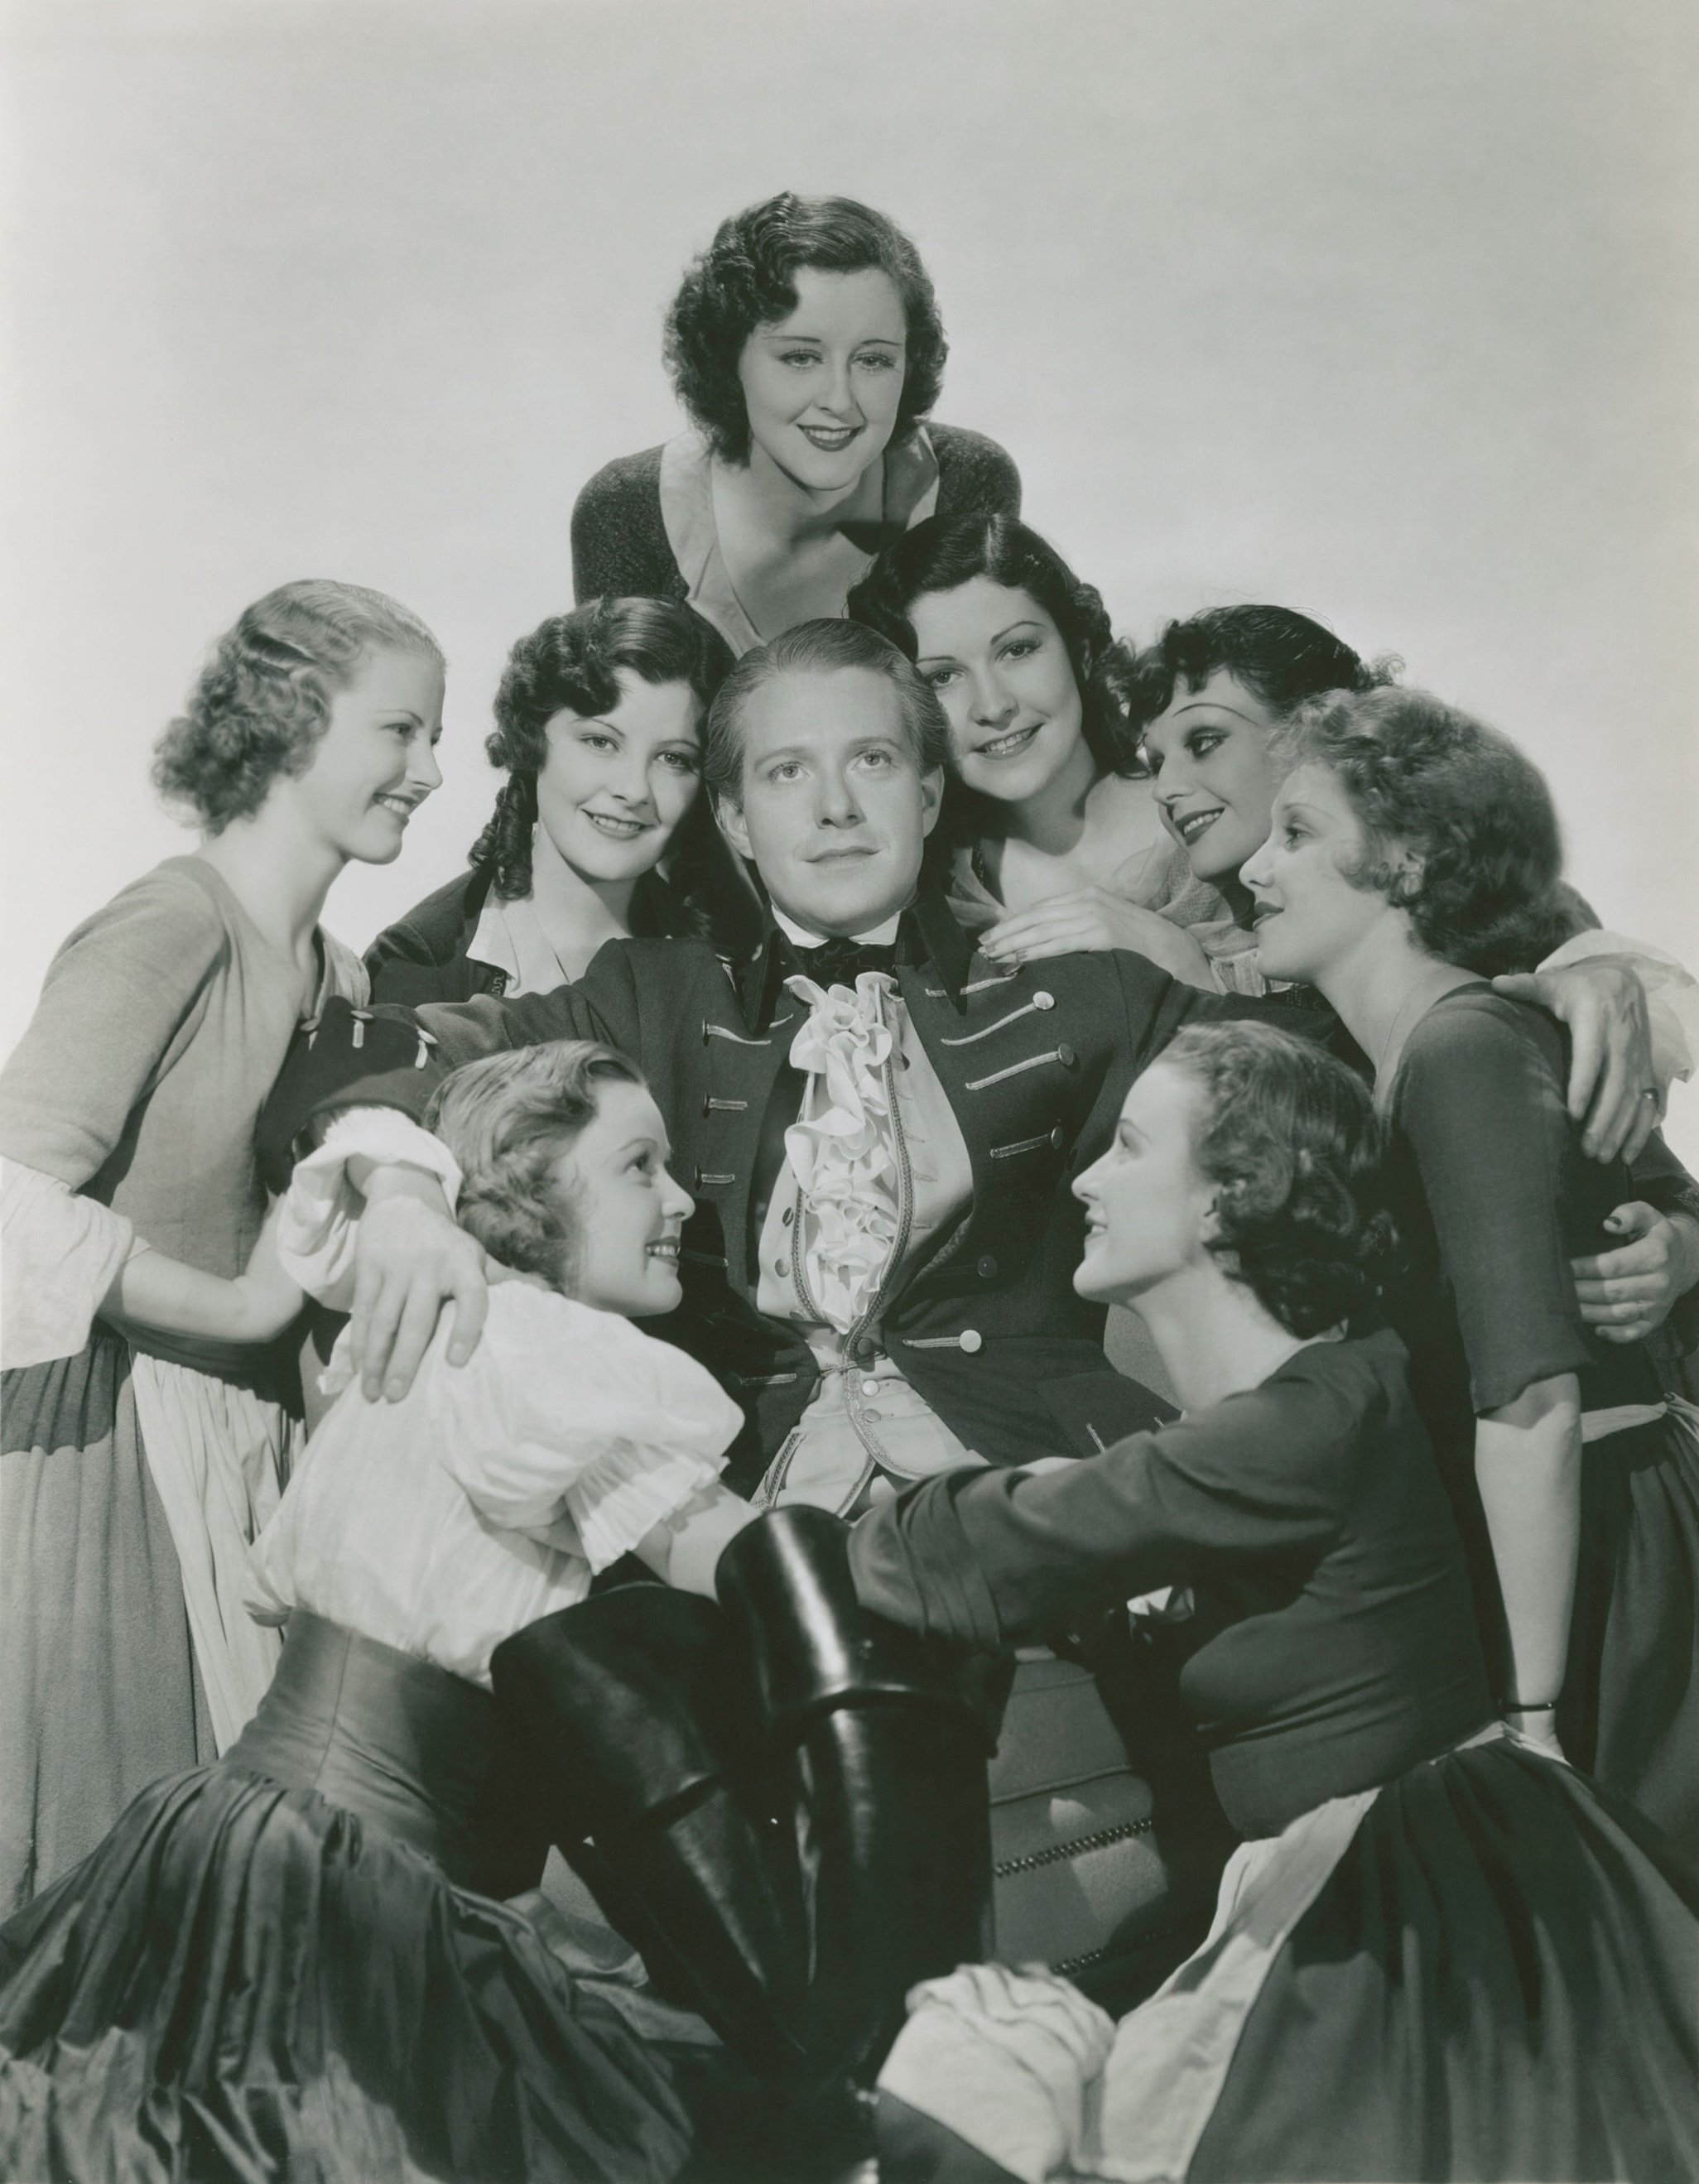 Mary Doran, Unknown, Unknown, Kay English, Patricia Farley, Cecilia Parker, Jean Chatburn, Unknown, Nelson Eddy